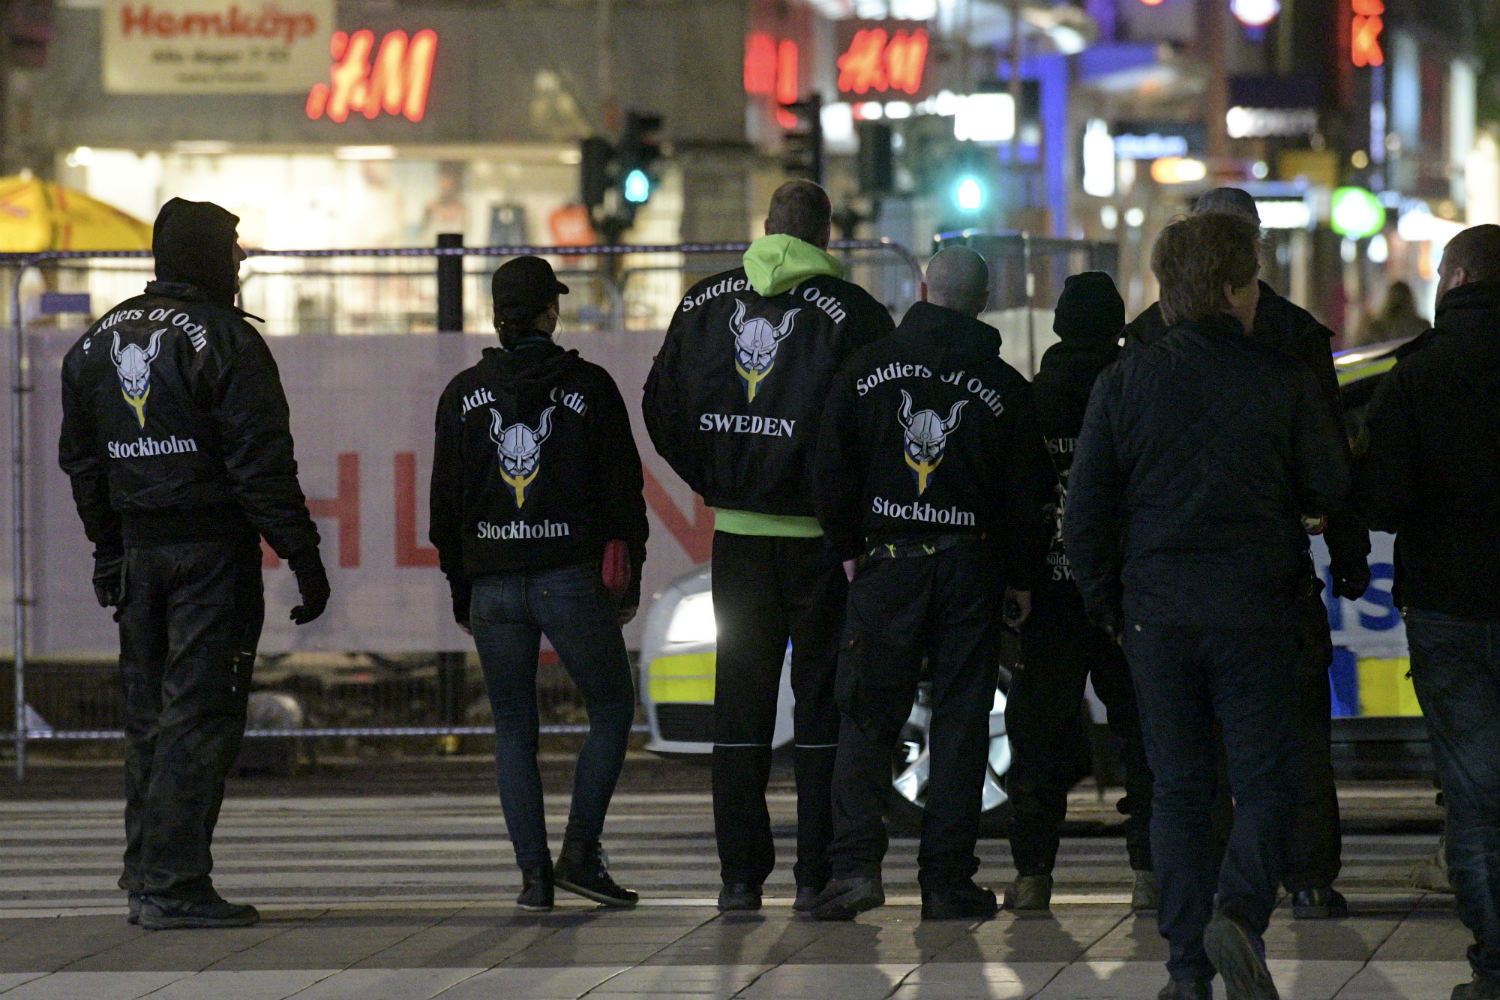 Swedish Soldiers of Odin group involved in 'extremist' clashes.